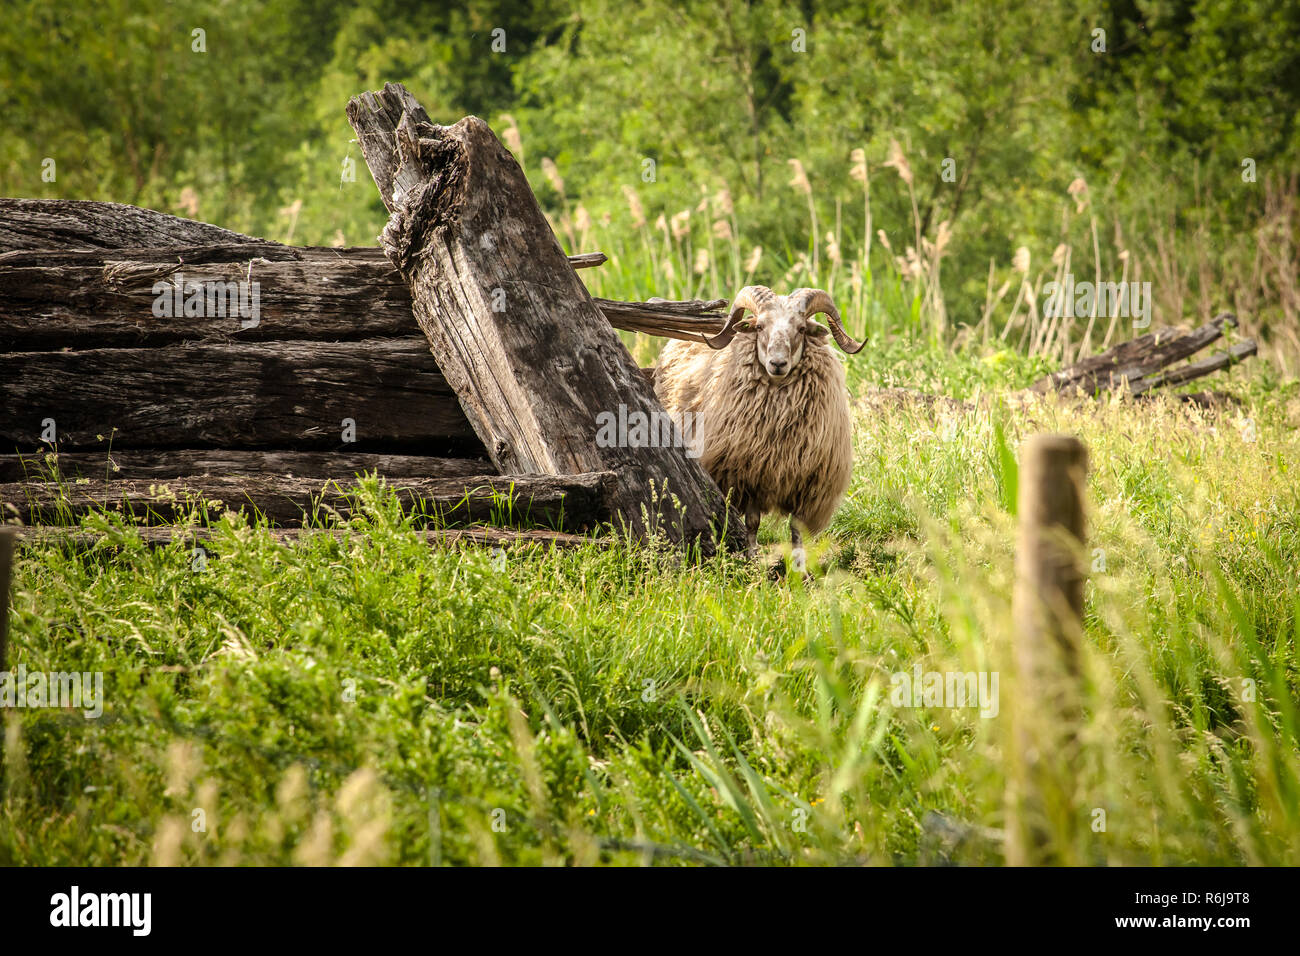 Raw and rough-looking scene with natural wild sheep looking from behind a pile of cut trees. Curious ram in a wild landscape with a natural environmen - Stock Image